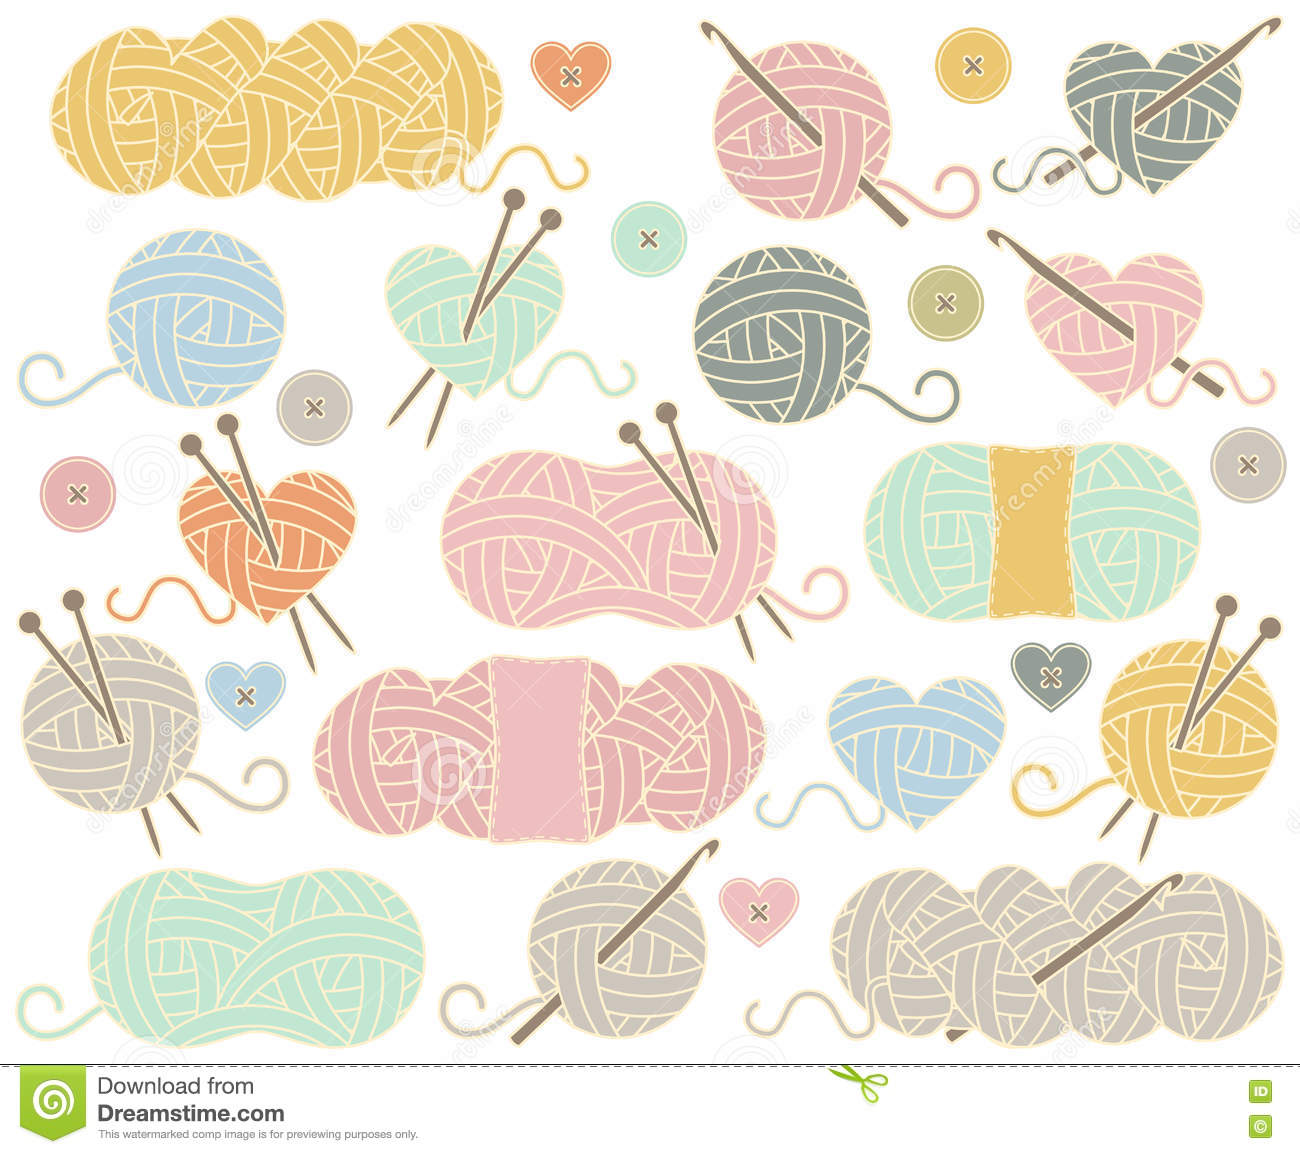 Cute Vector Collection Of Balls Of Yarn Skeins Of Yarn Or Thread Stock Vector Illustration Of Leisure Hobby 77272177